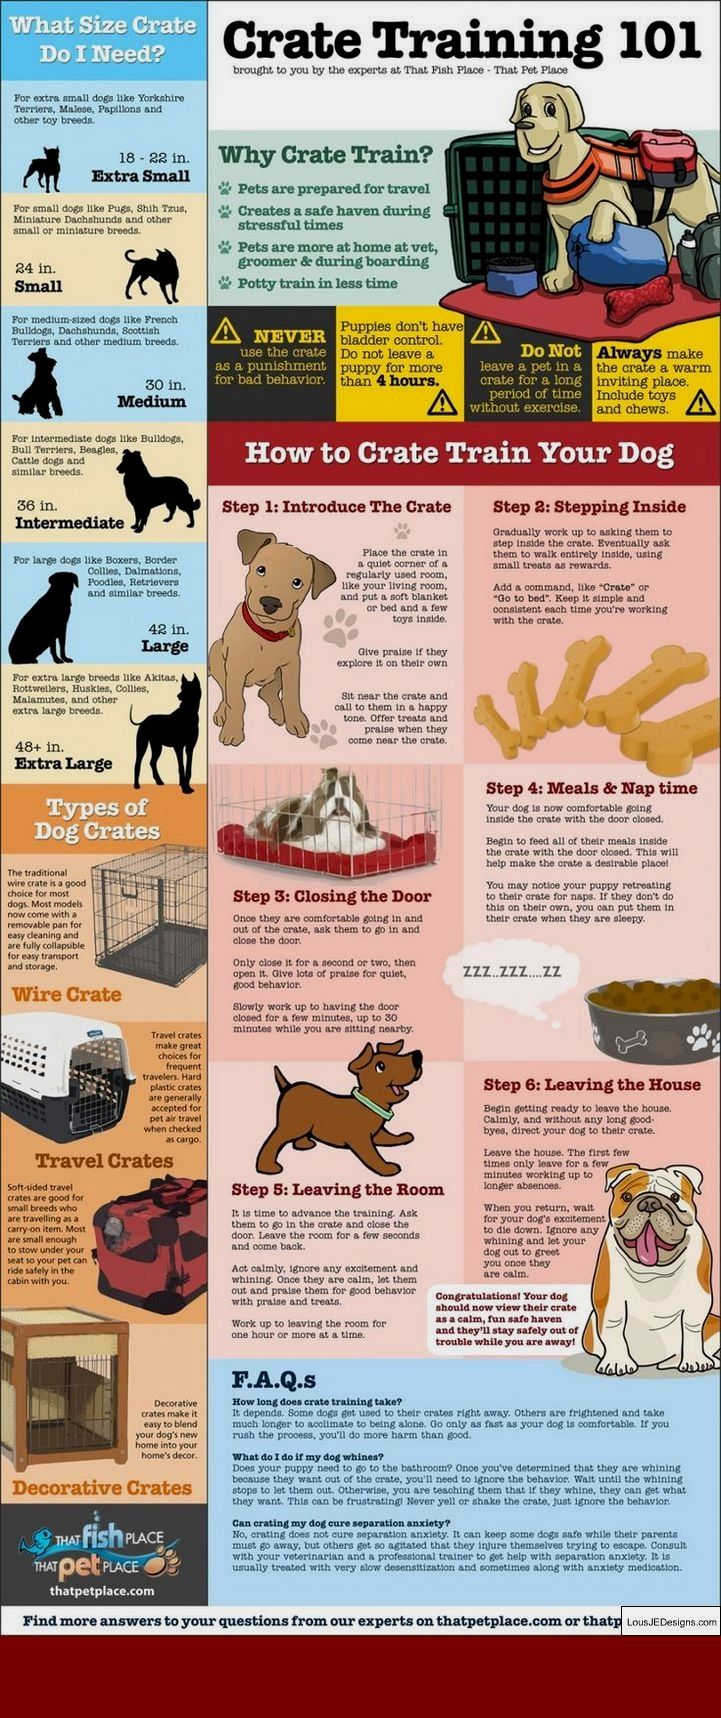 Pin By Sophia Kim On Service Dog In 2020 Service Dog Training